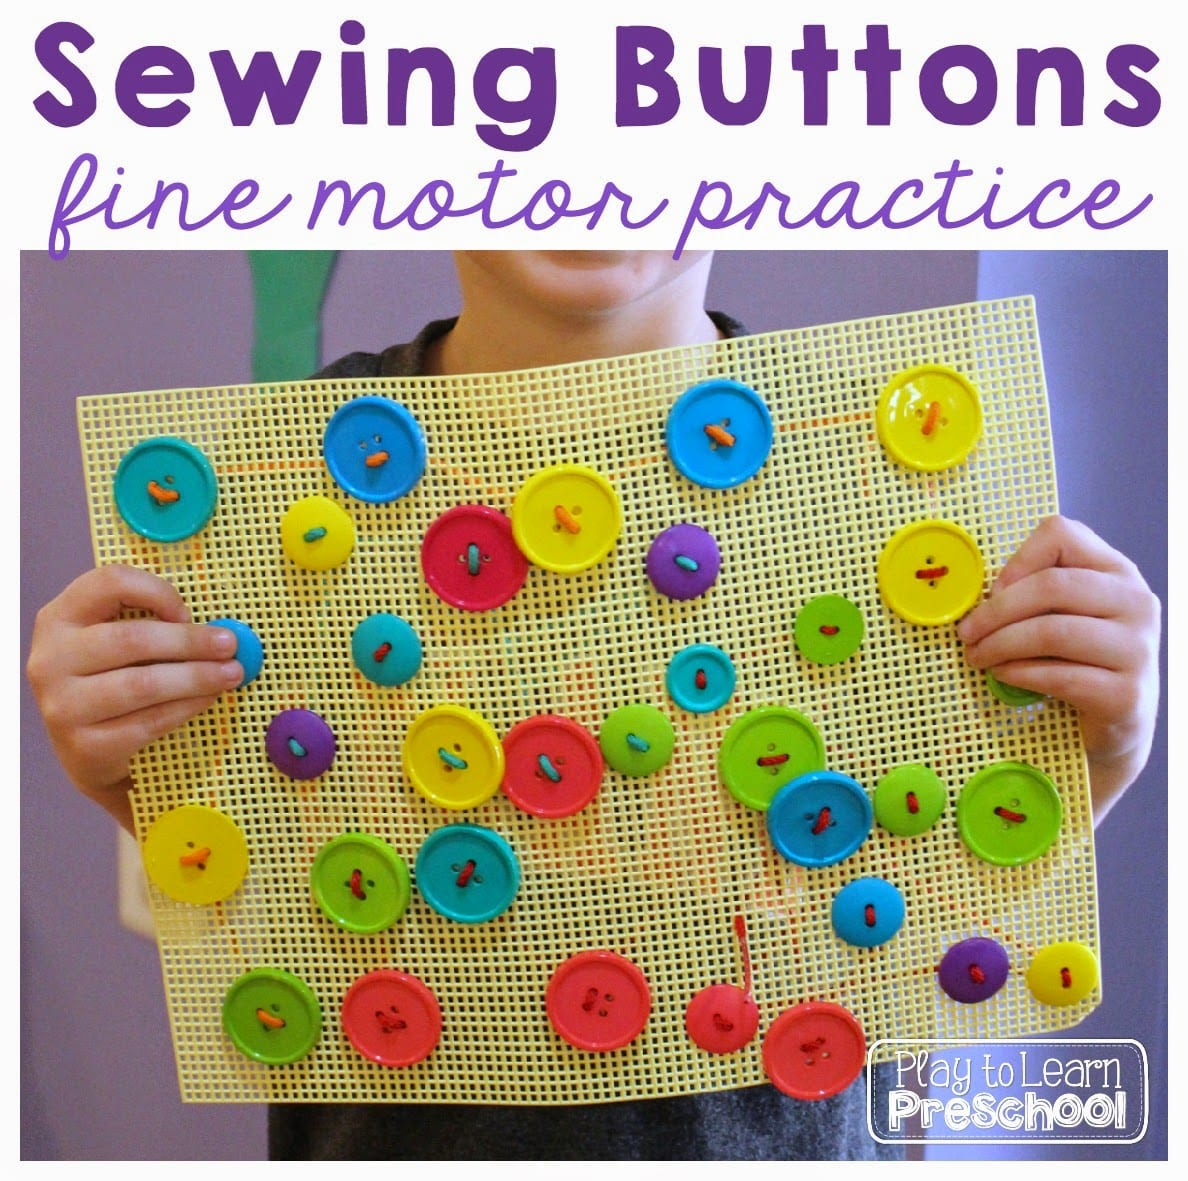 Sewing Buttons Fine Motor Practice